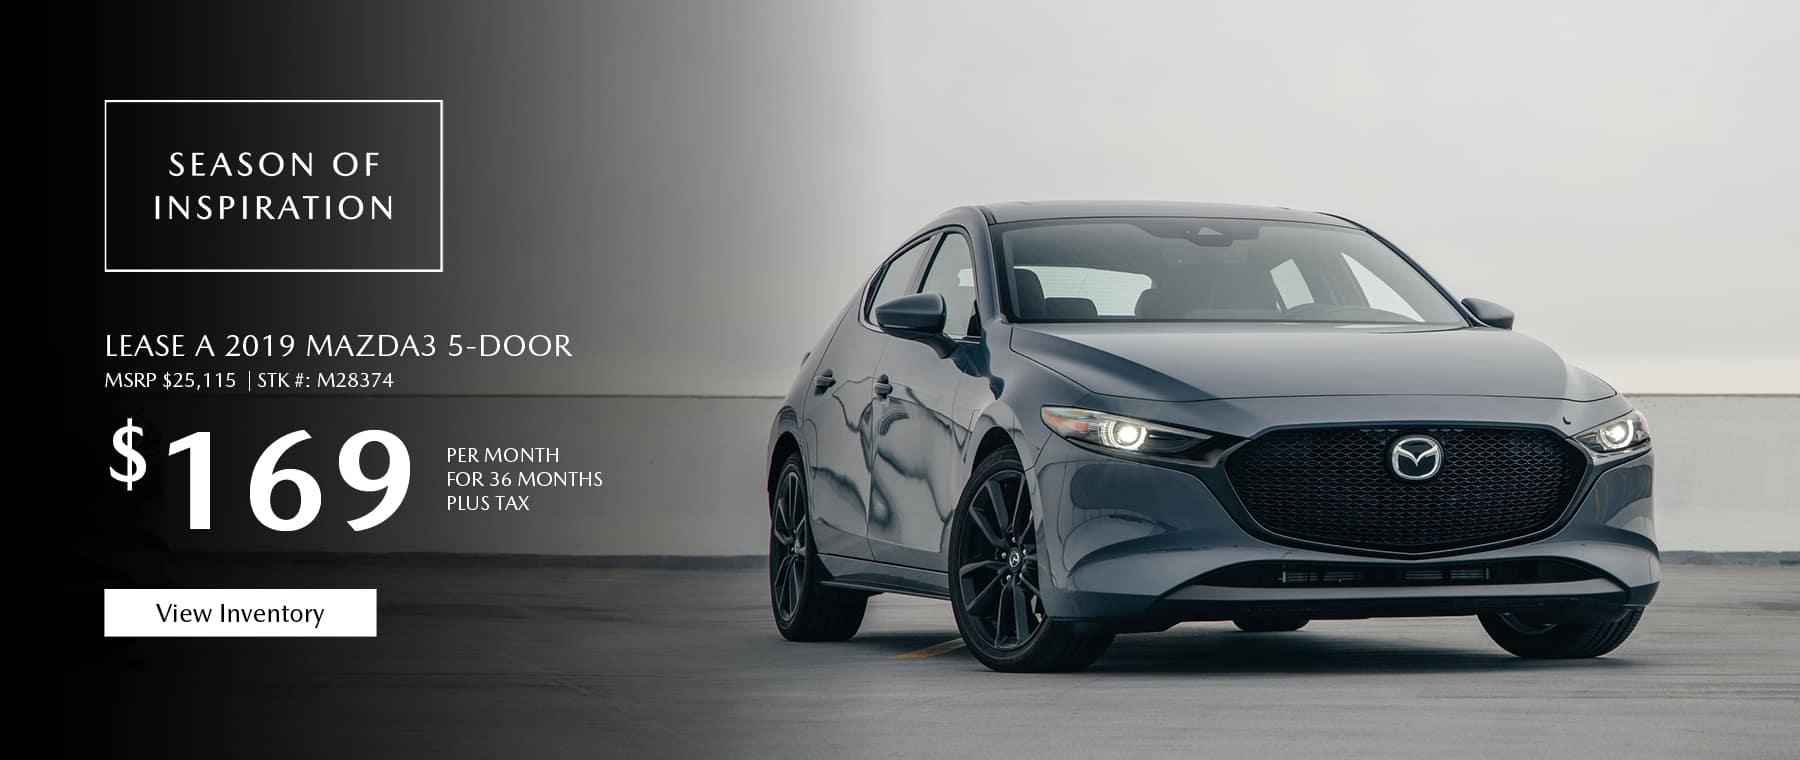 Lease the 2019 Mazda3 hatchback for $169 per month, plus tax.